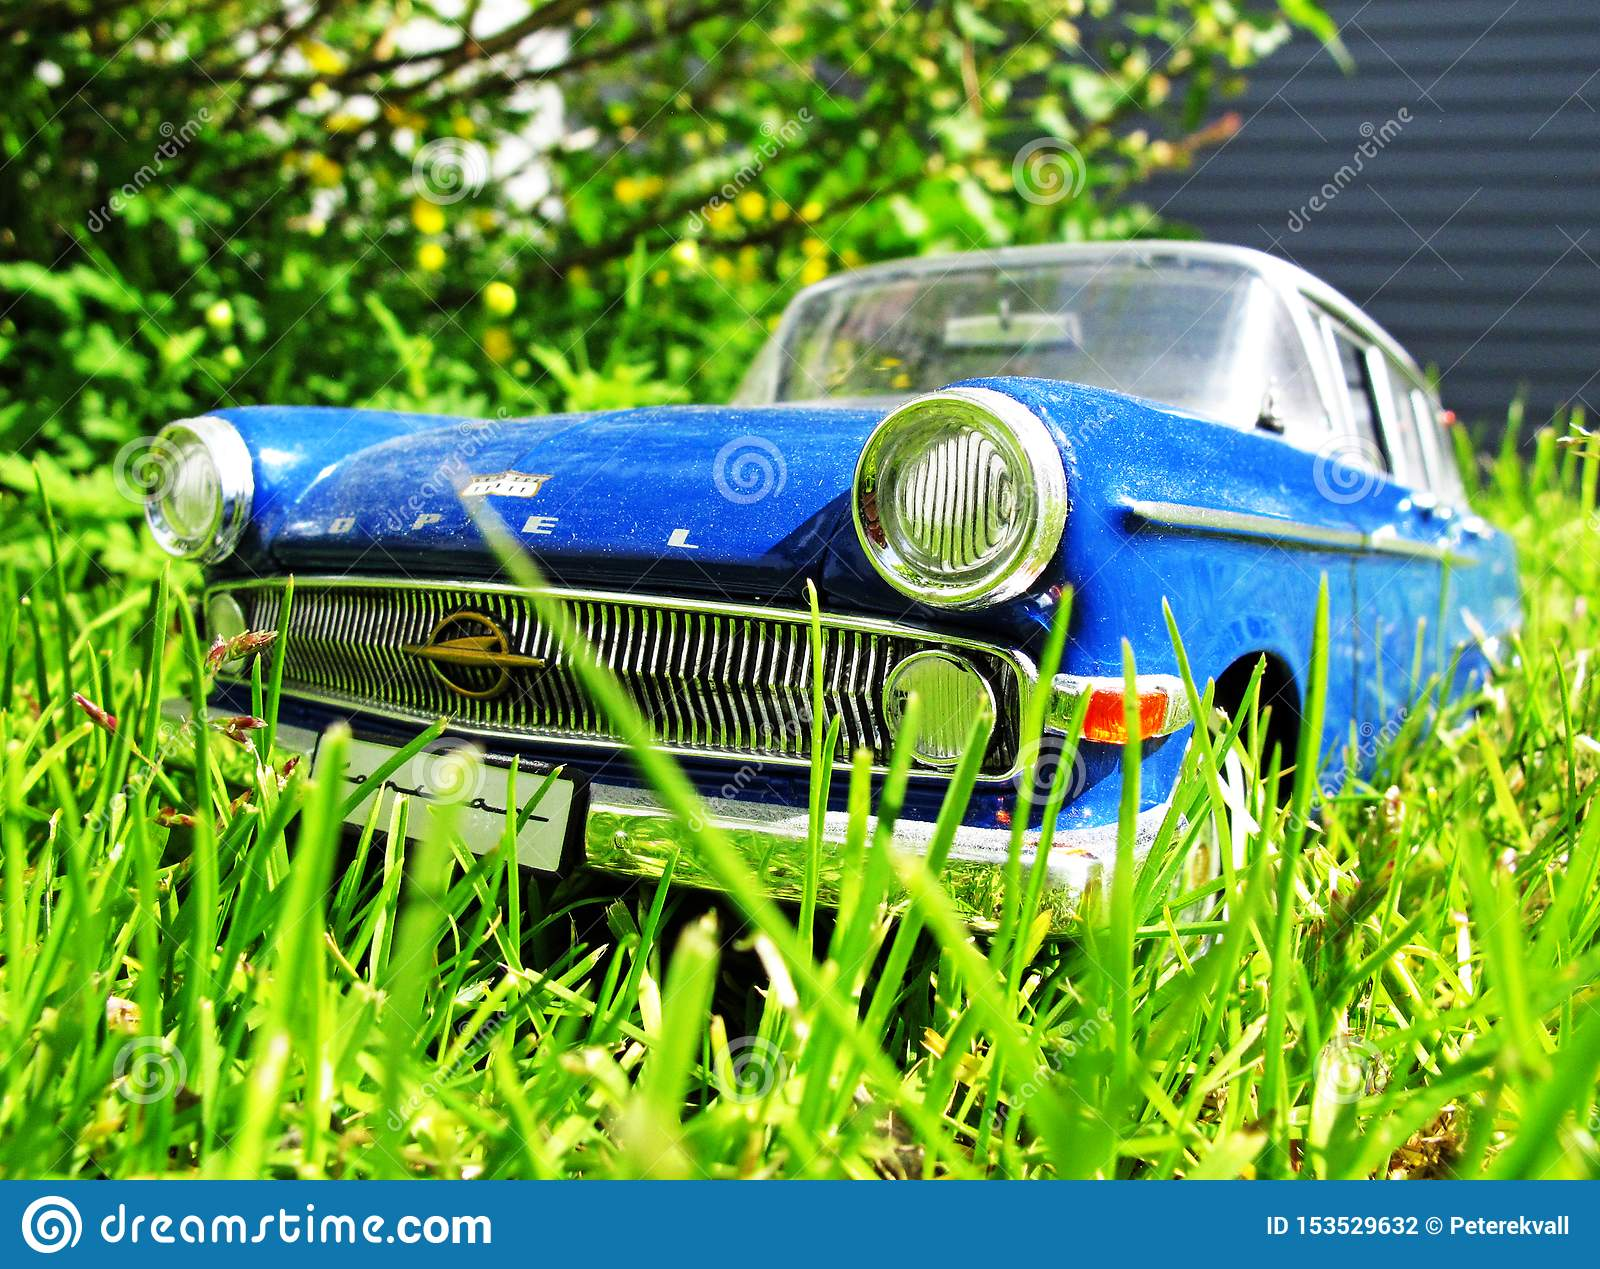 Old vintage car in high grass